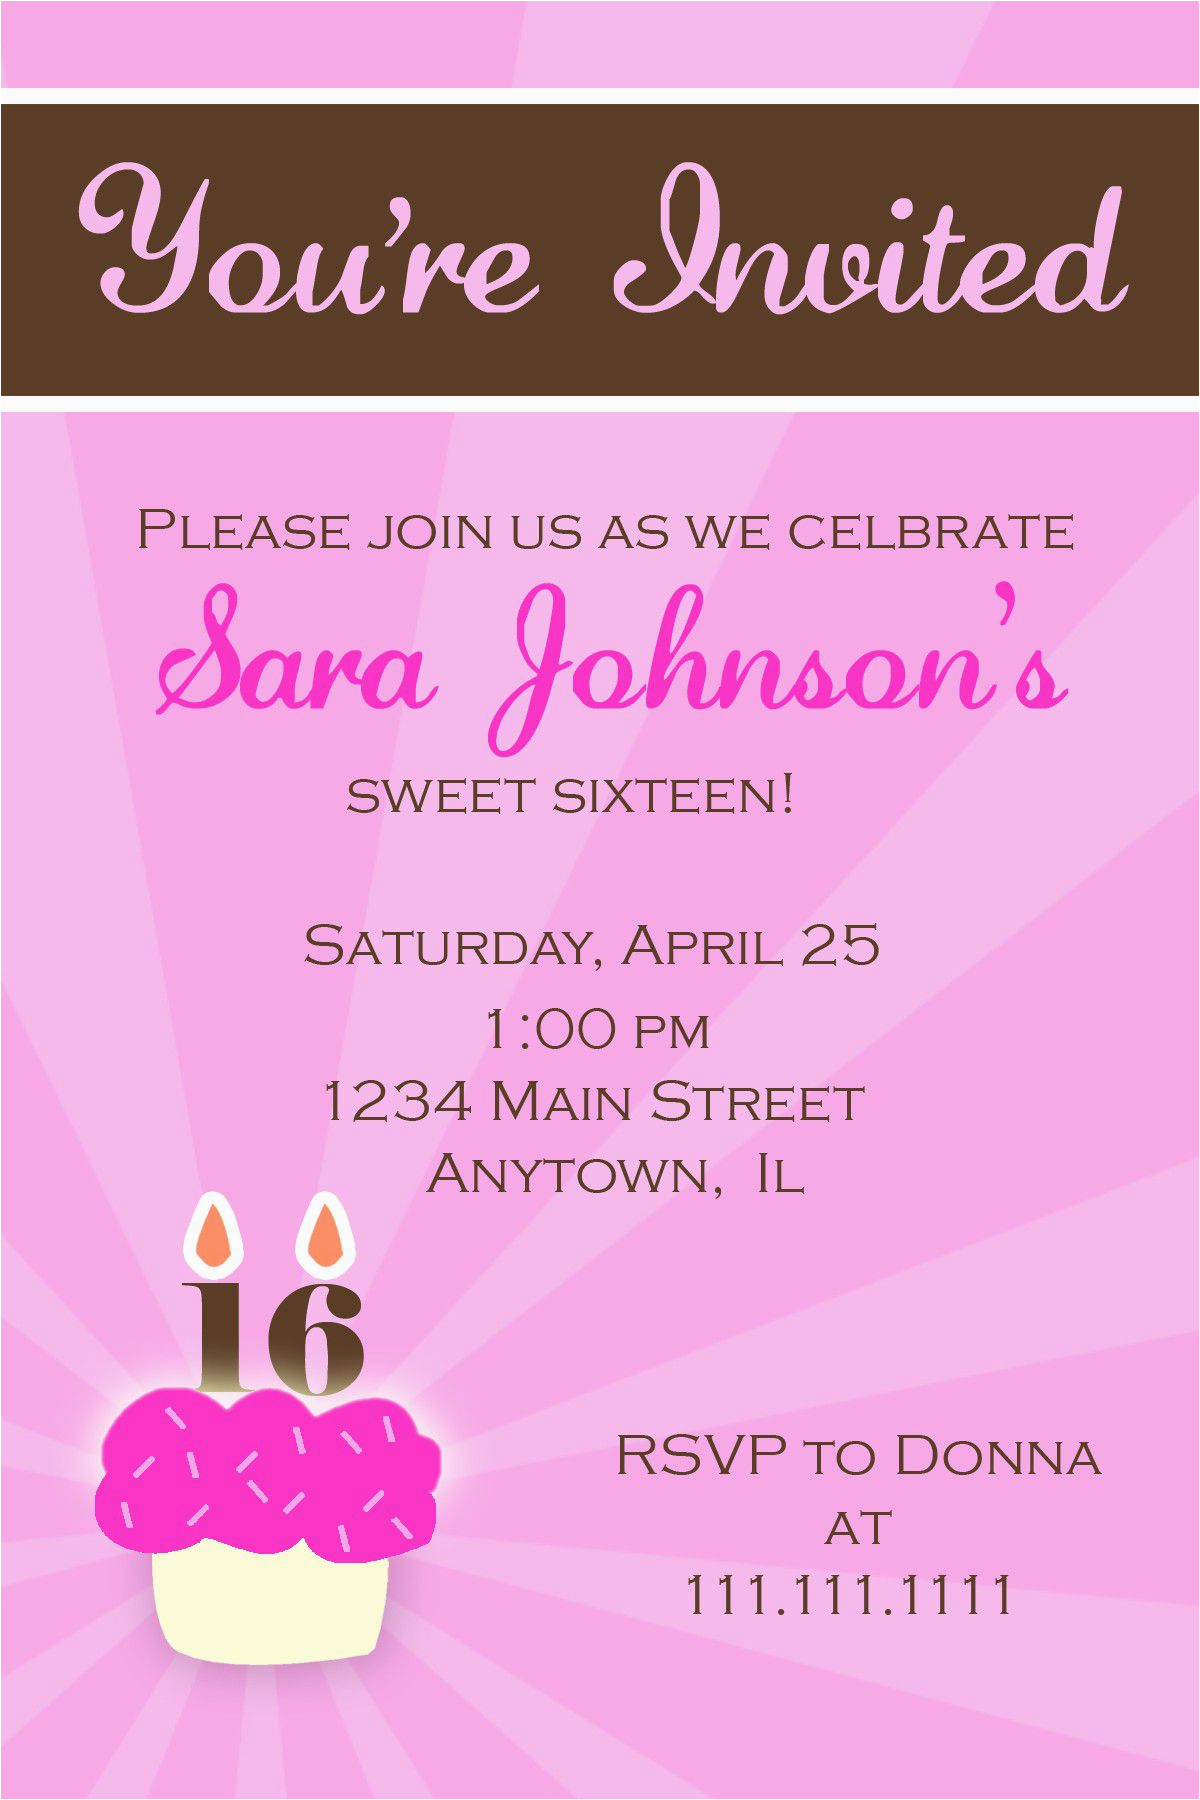 Invitation Cards for Sweet 16 Birthday Birthday Party Sweet 16 Birthday Invitations Templates